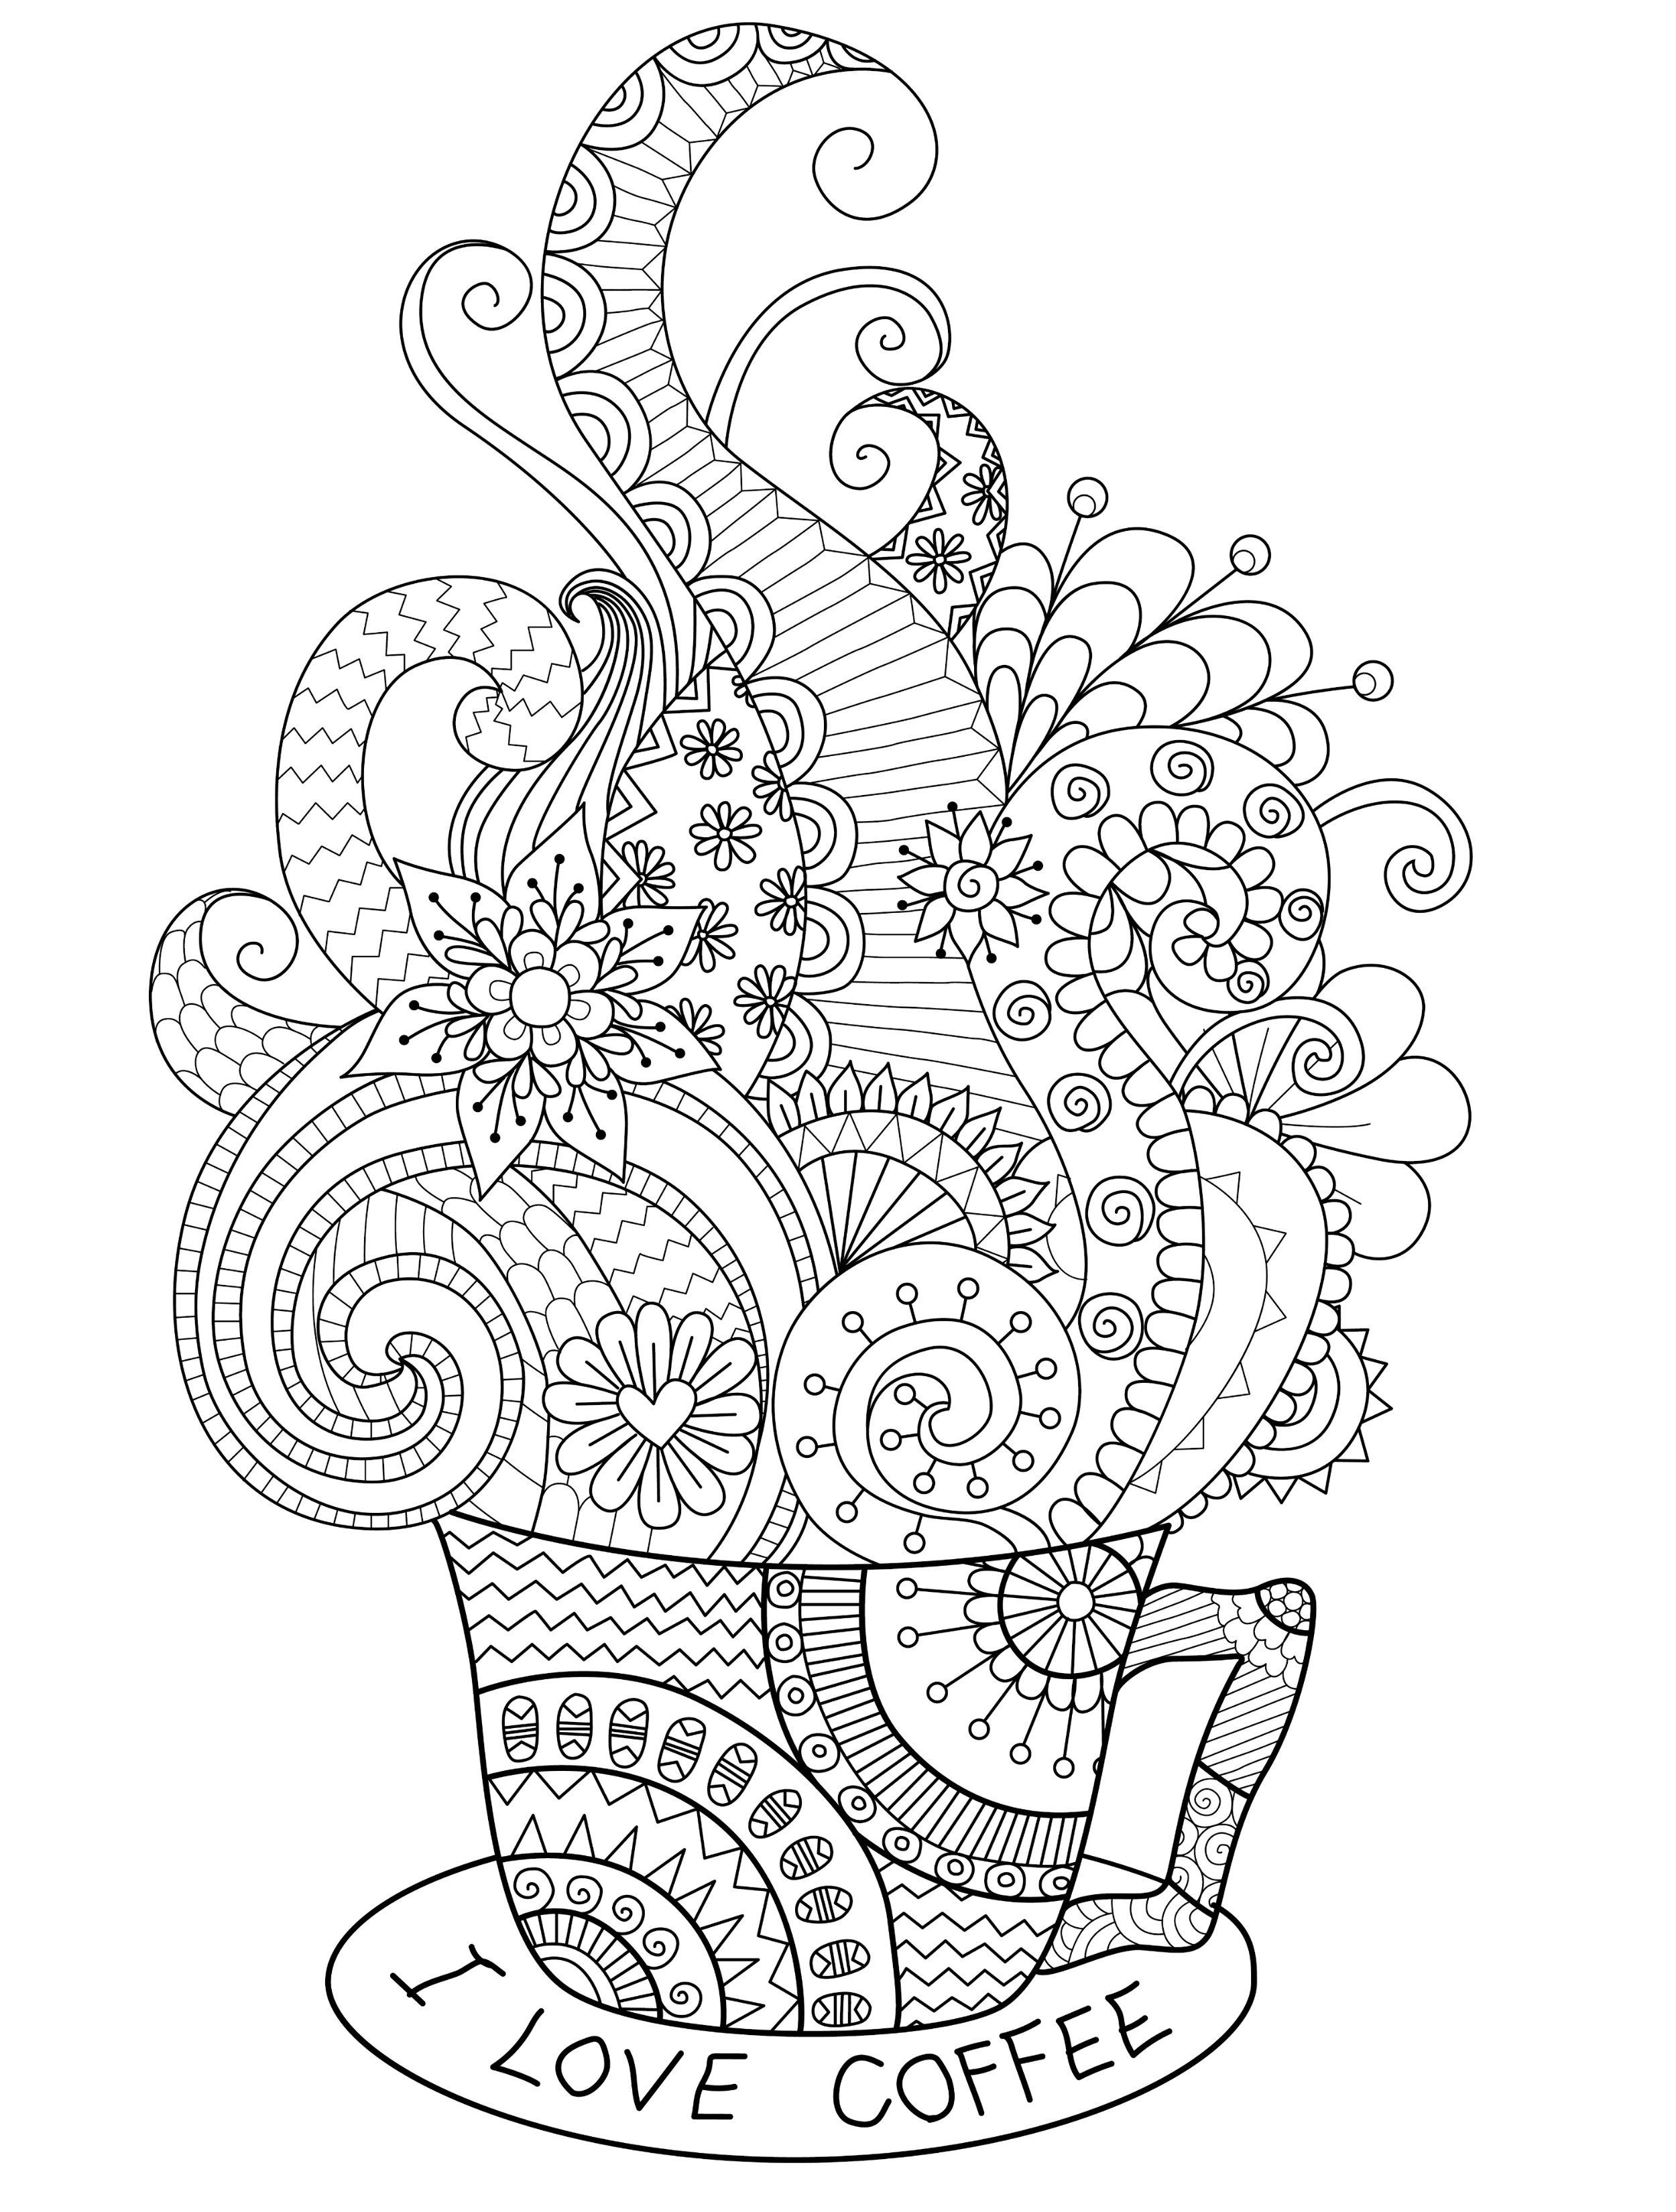 Pin on Color me!